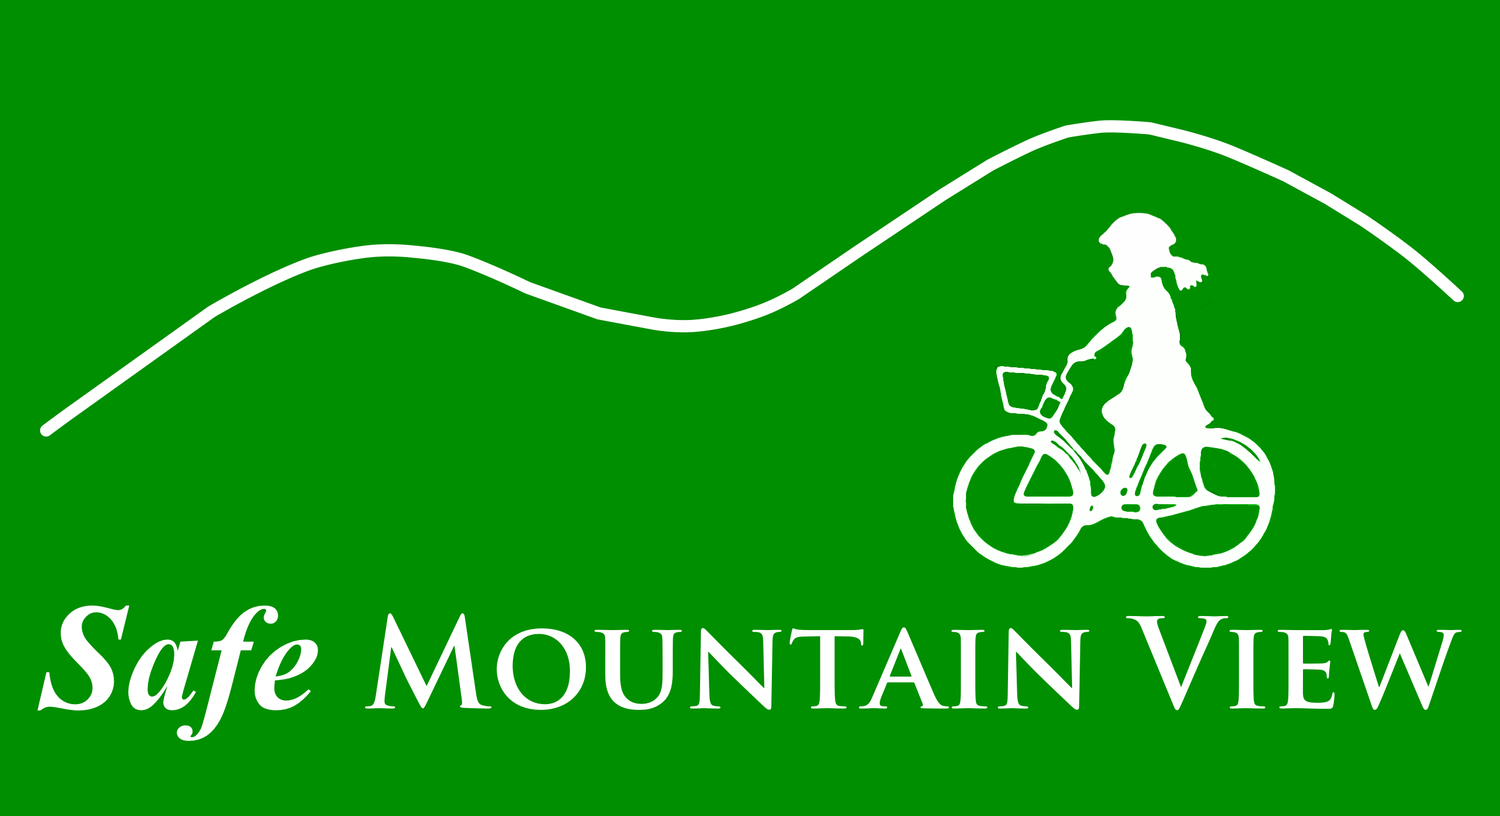 Safe Mountain View